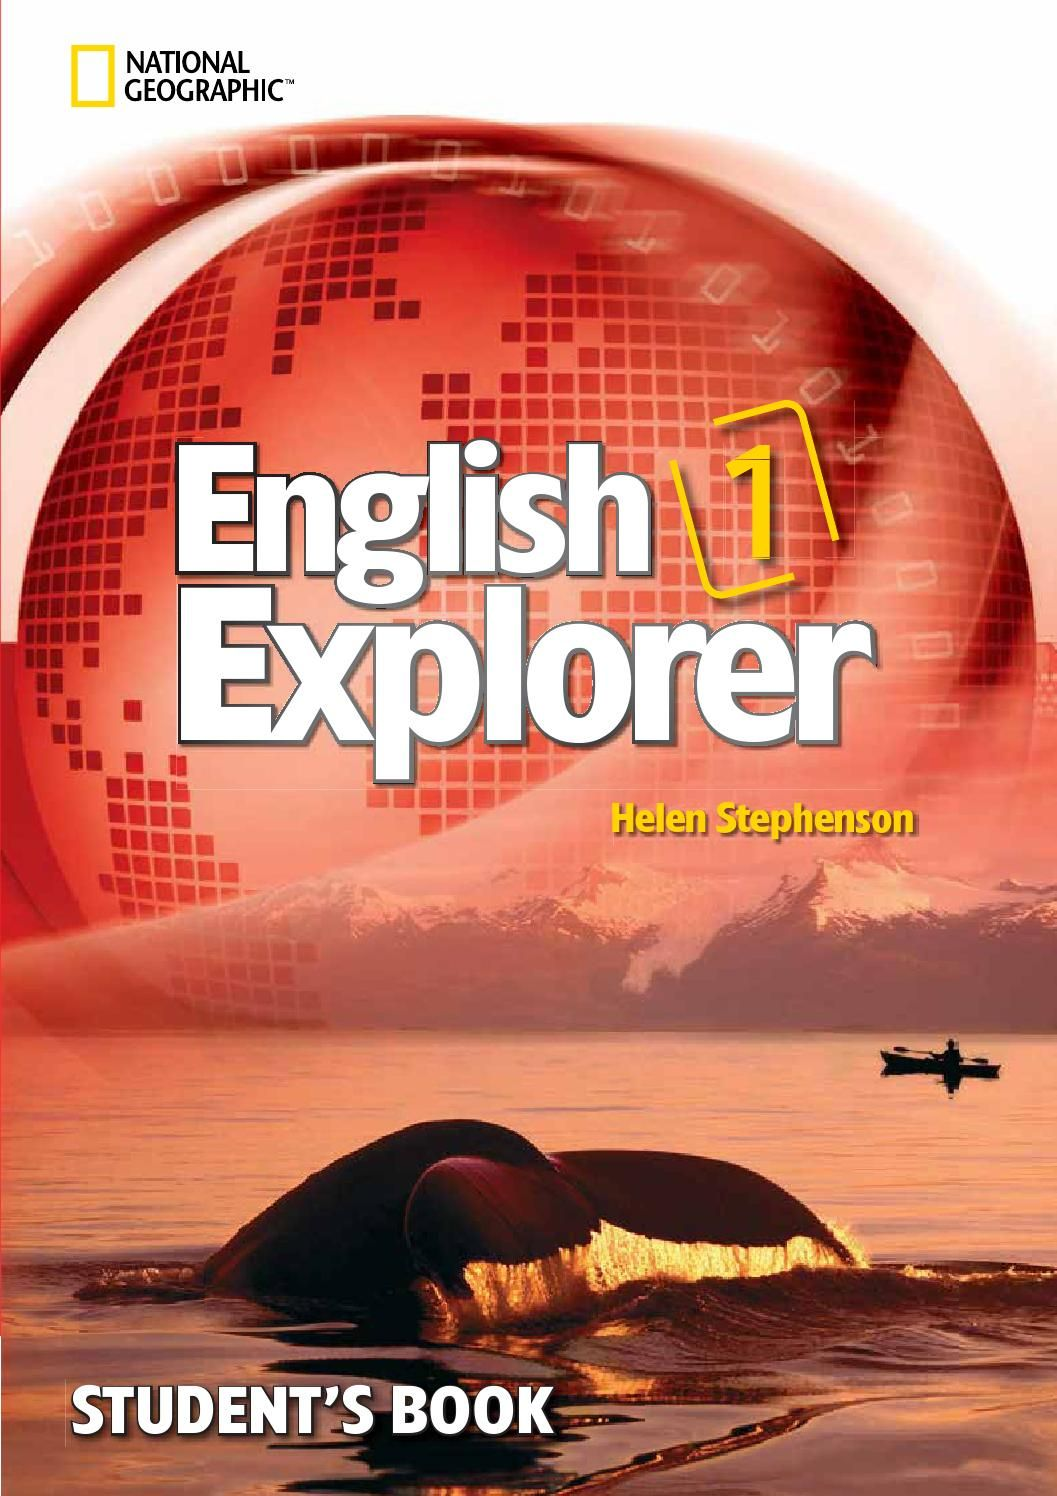 Workbooks english grammar workbook for dummies pdf free download : English Explorer 1 Student Book | English, Students and Learning